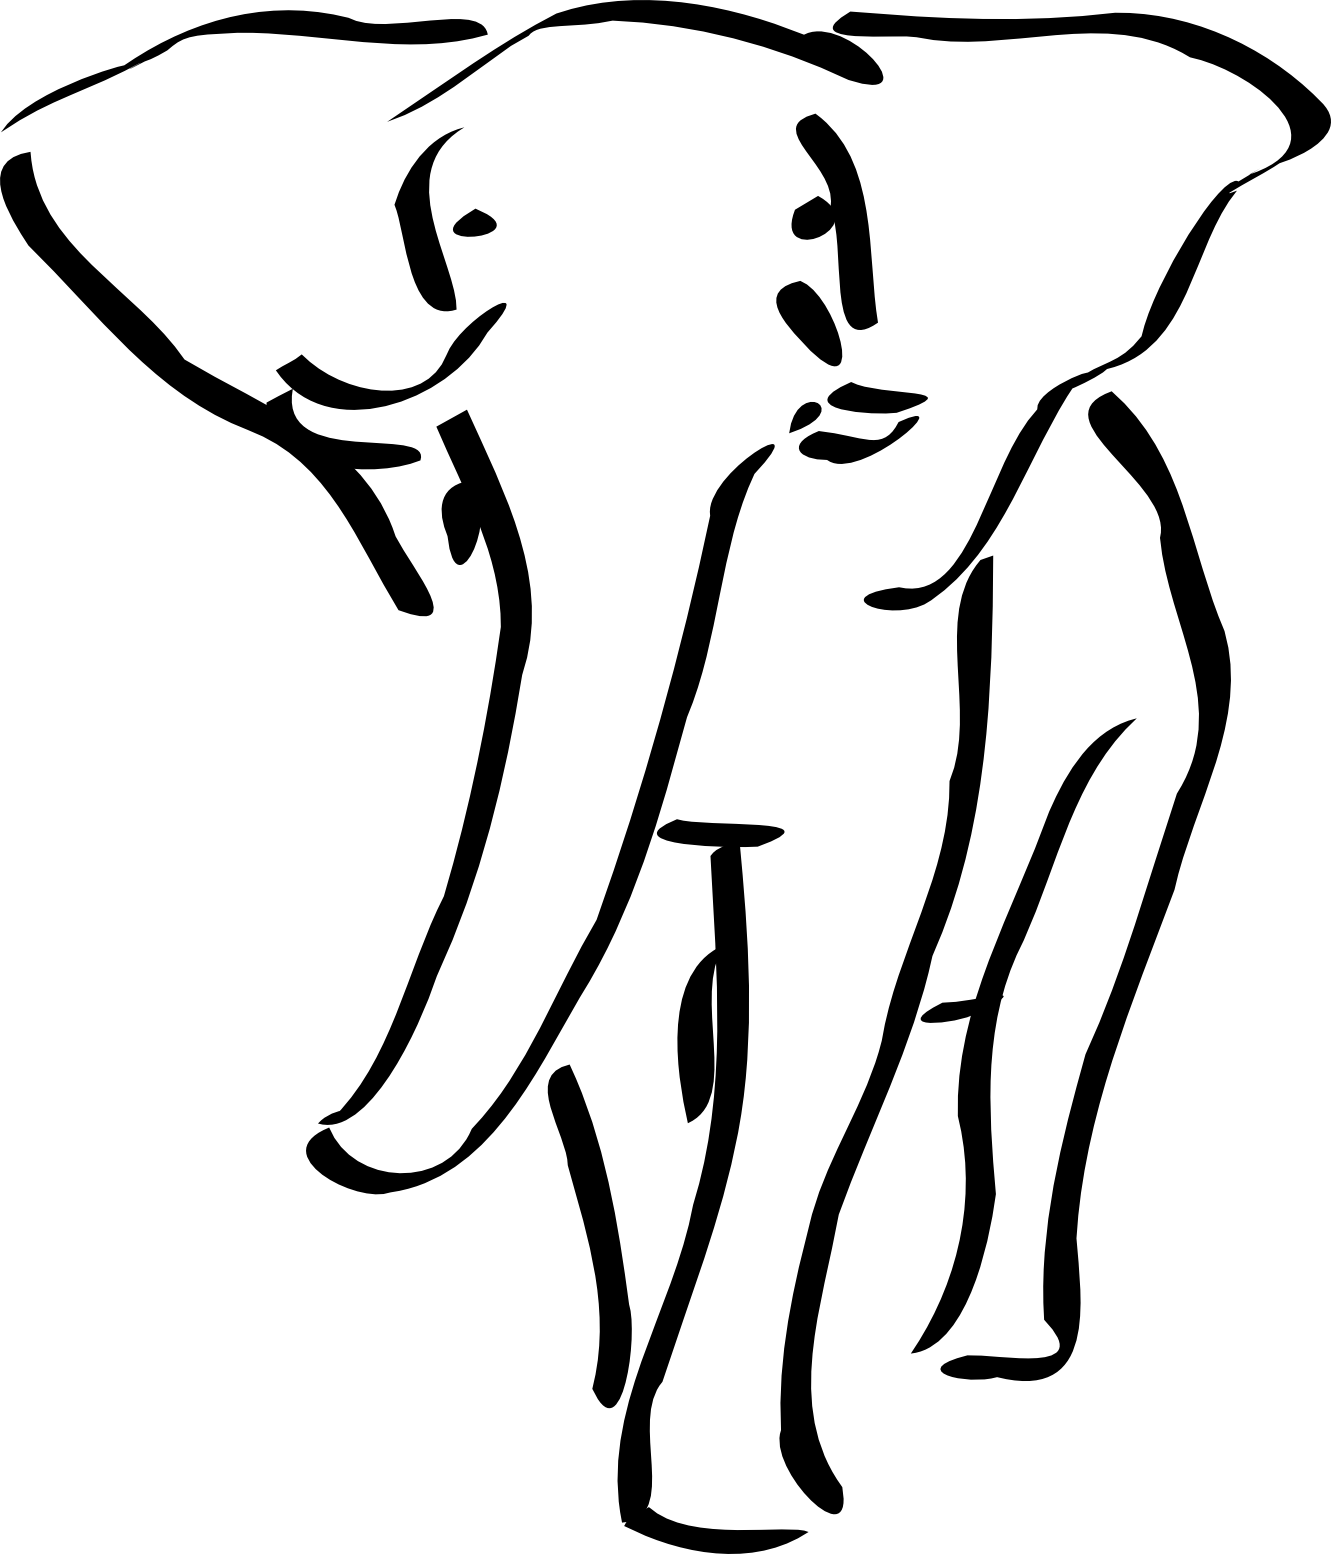 Simple Clip Art Line : Melwe elephant black white line art tatoo tattoo svg